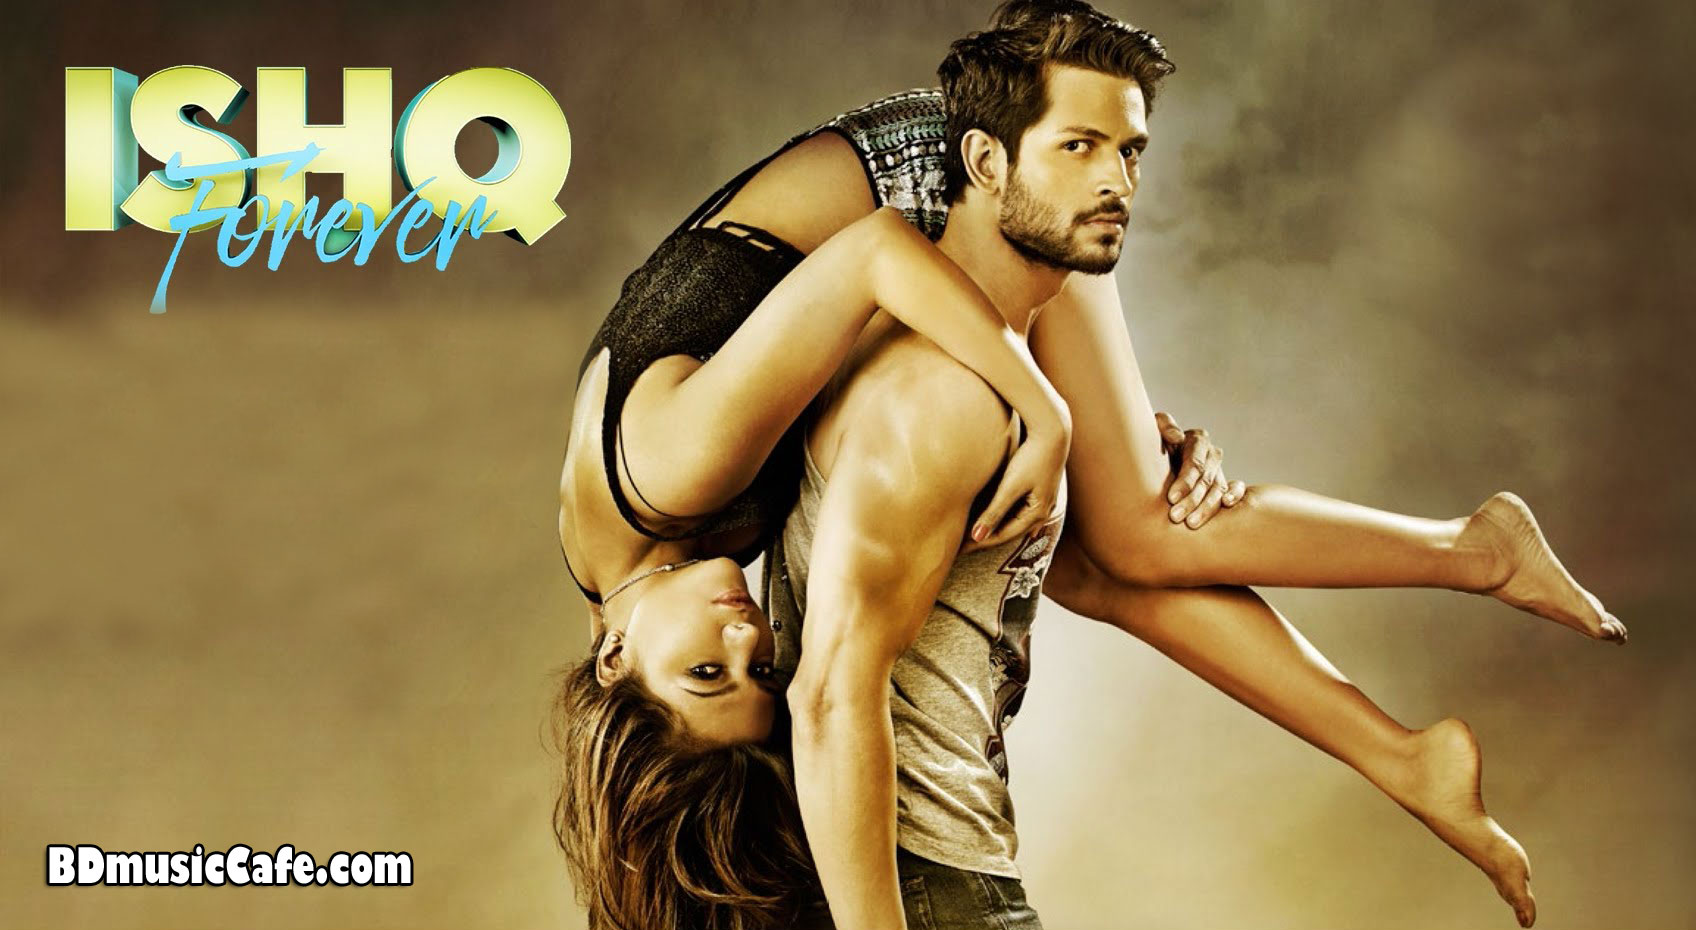 Ishq forever 2016 bollywood movie mp3 songs download All songs hd video 2016